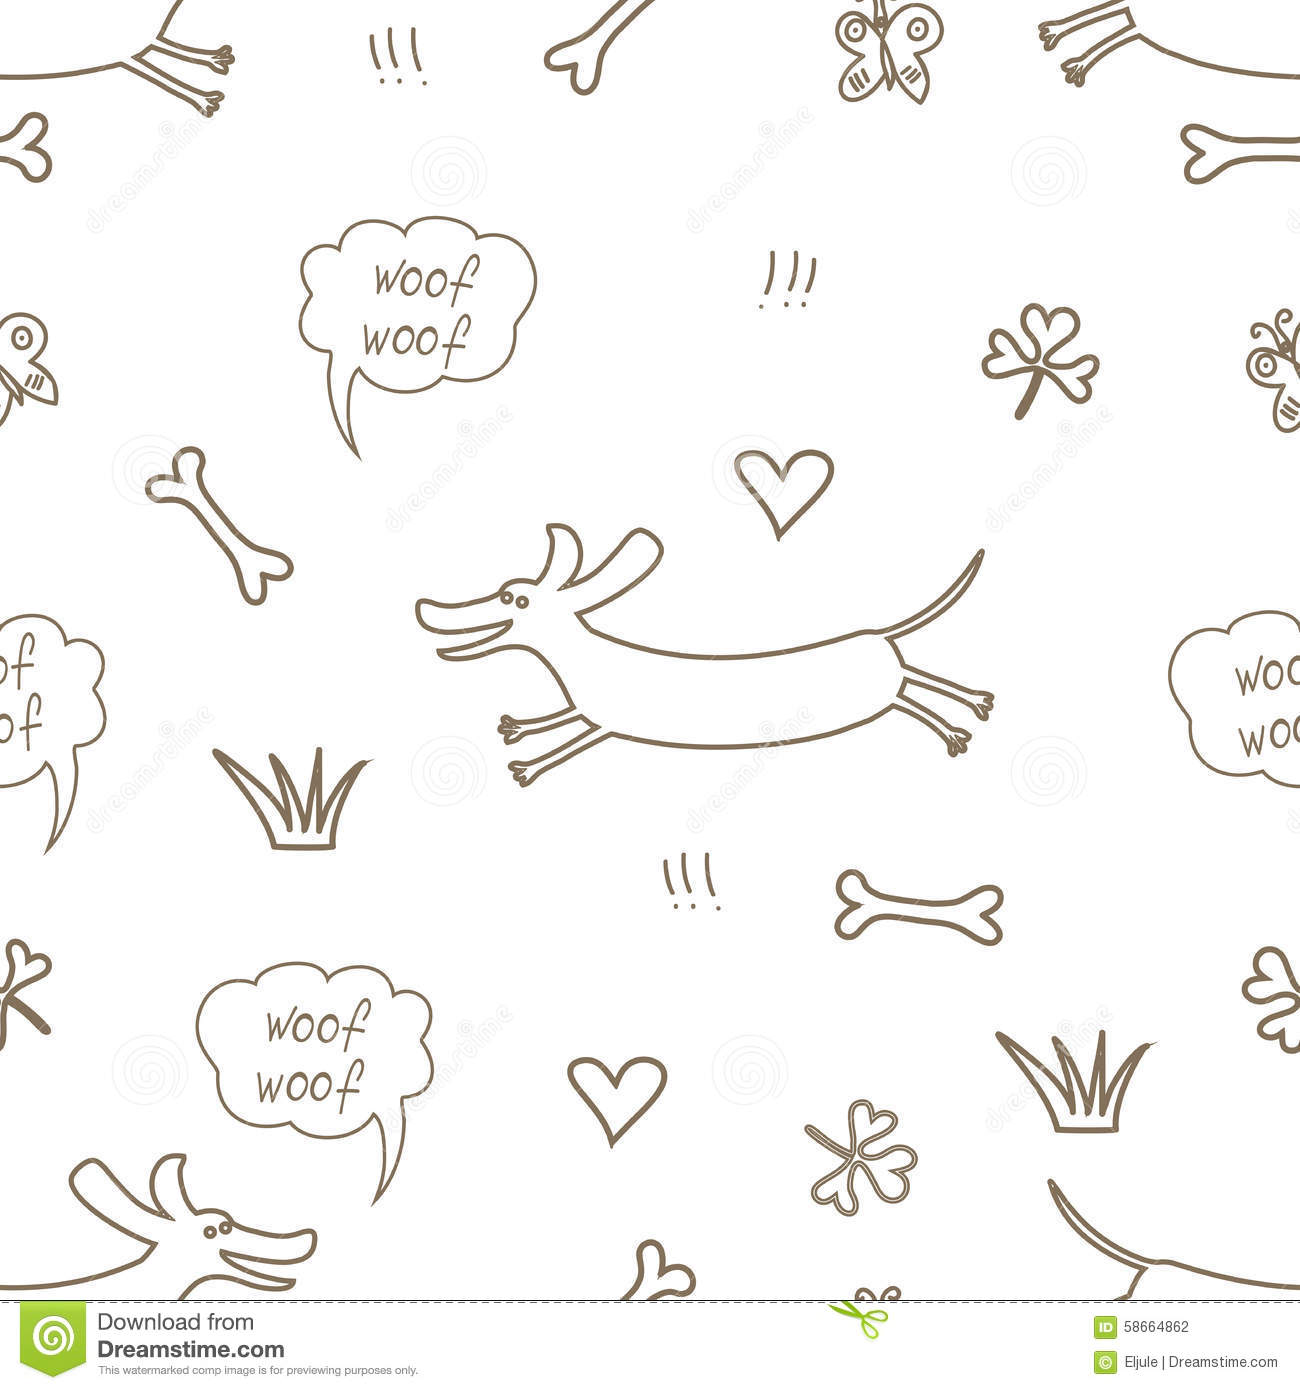 Seamless Pattern With The Dachshund Stock Vector - Illustration of animal, illustration: 58664862